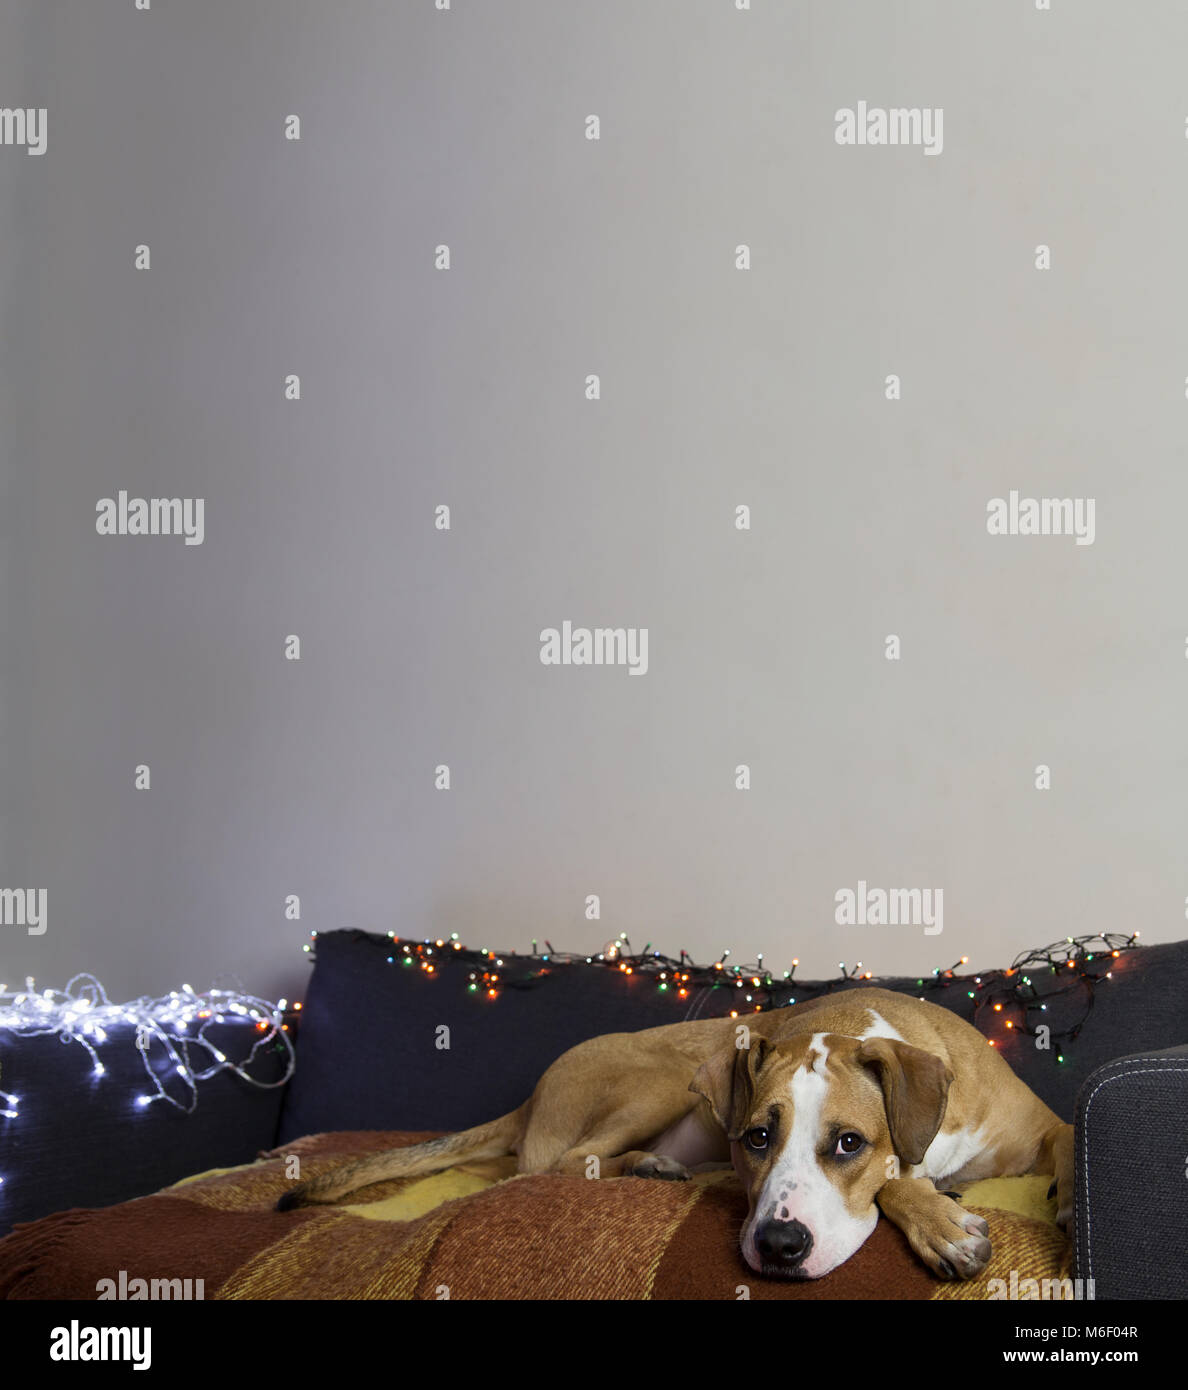 Dog on couch in cozy room with christmas tree set and white wall - Stock Image